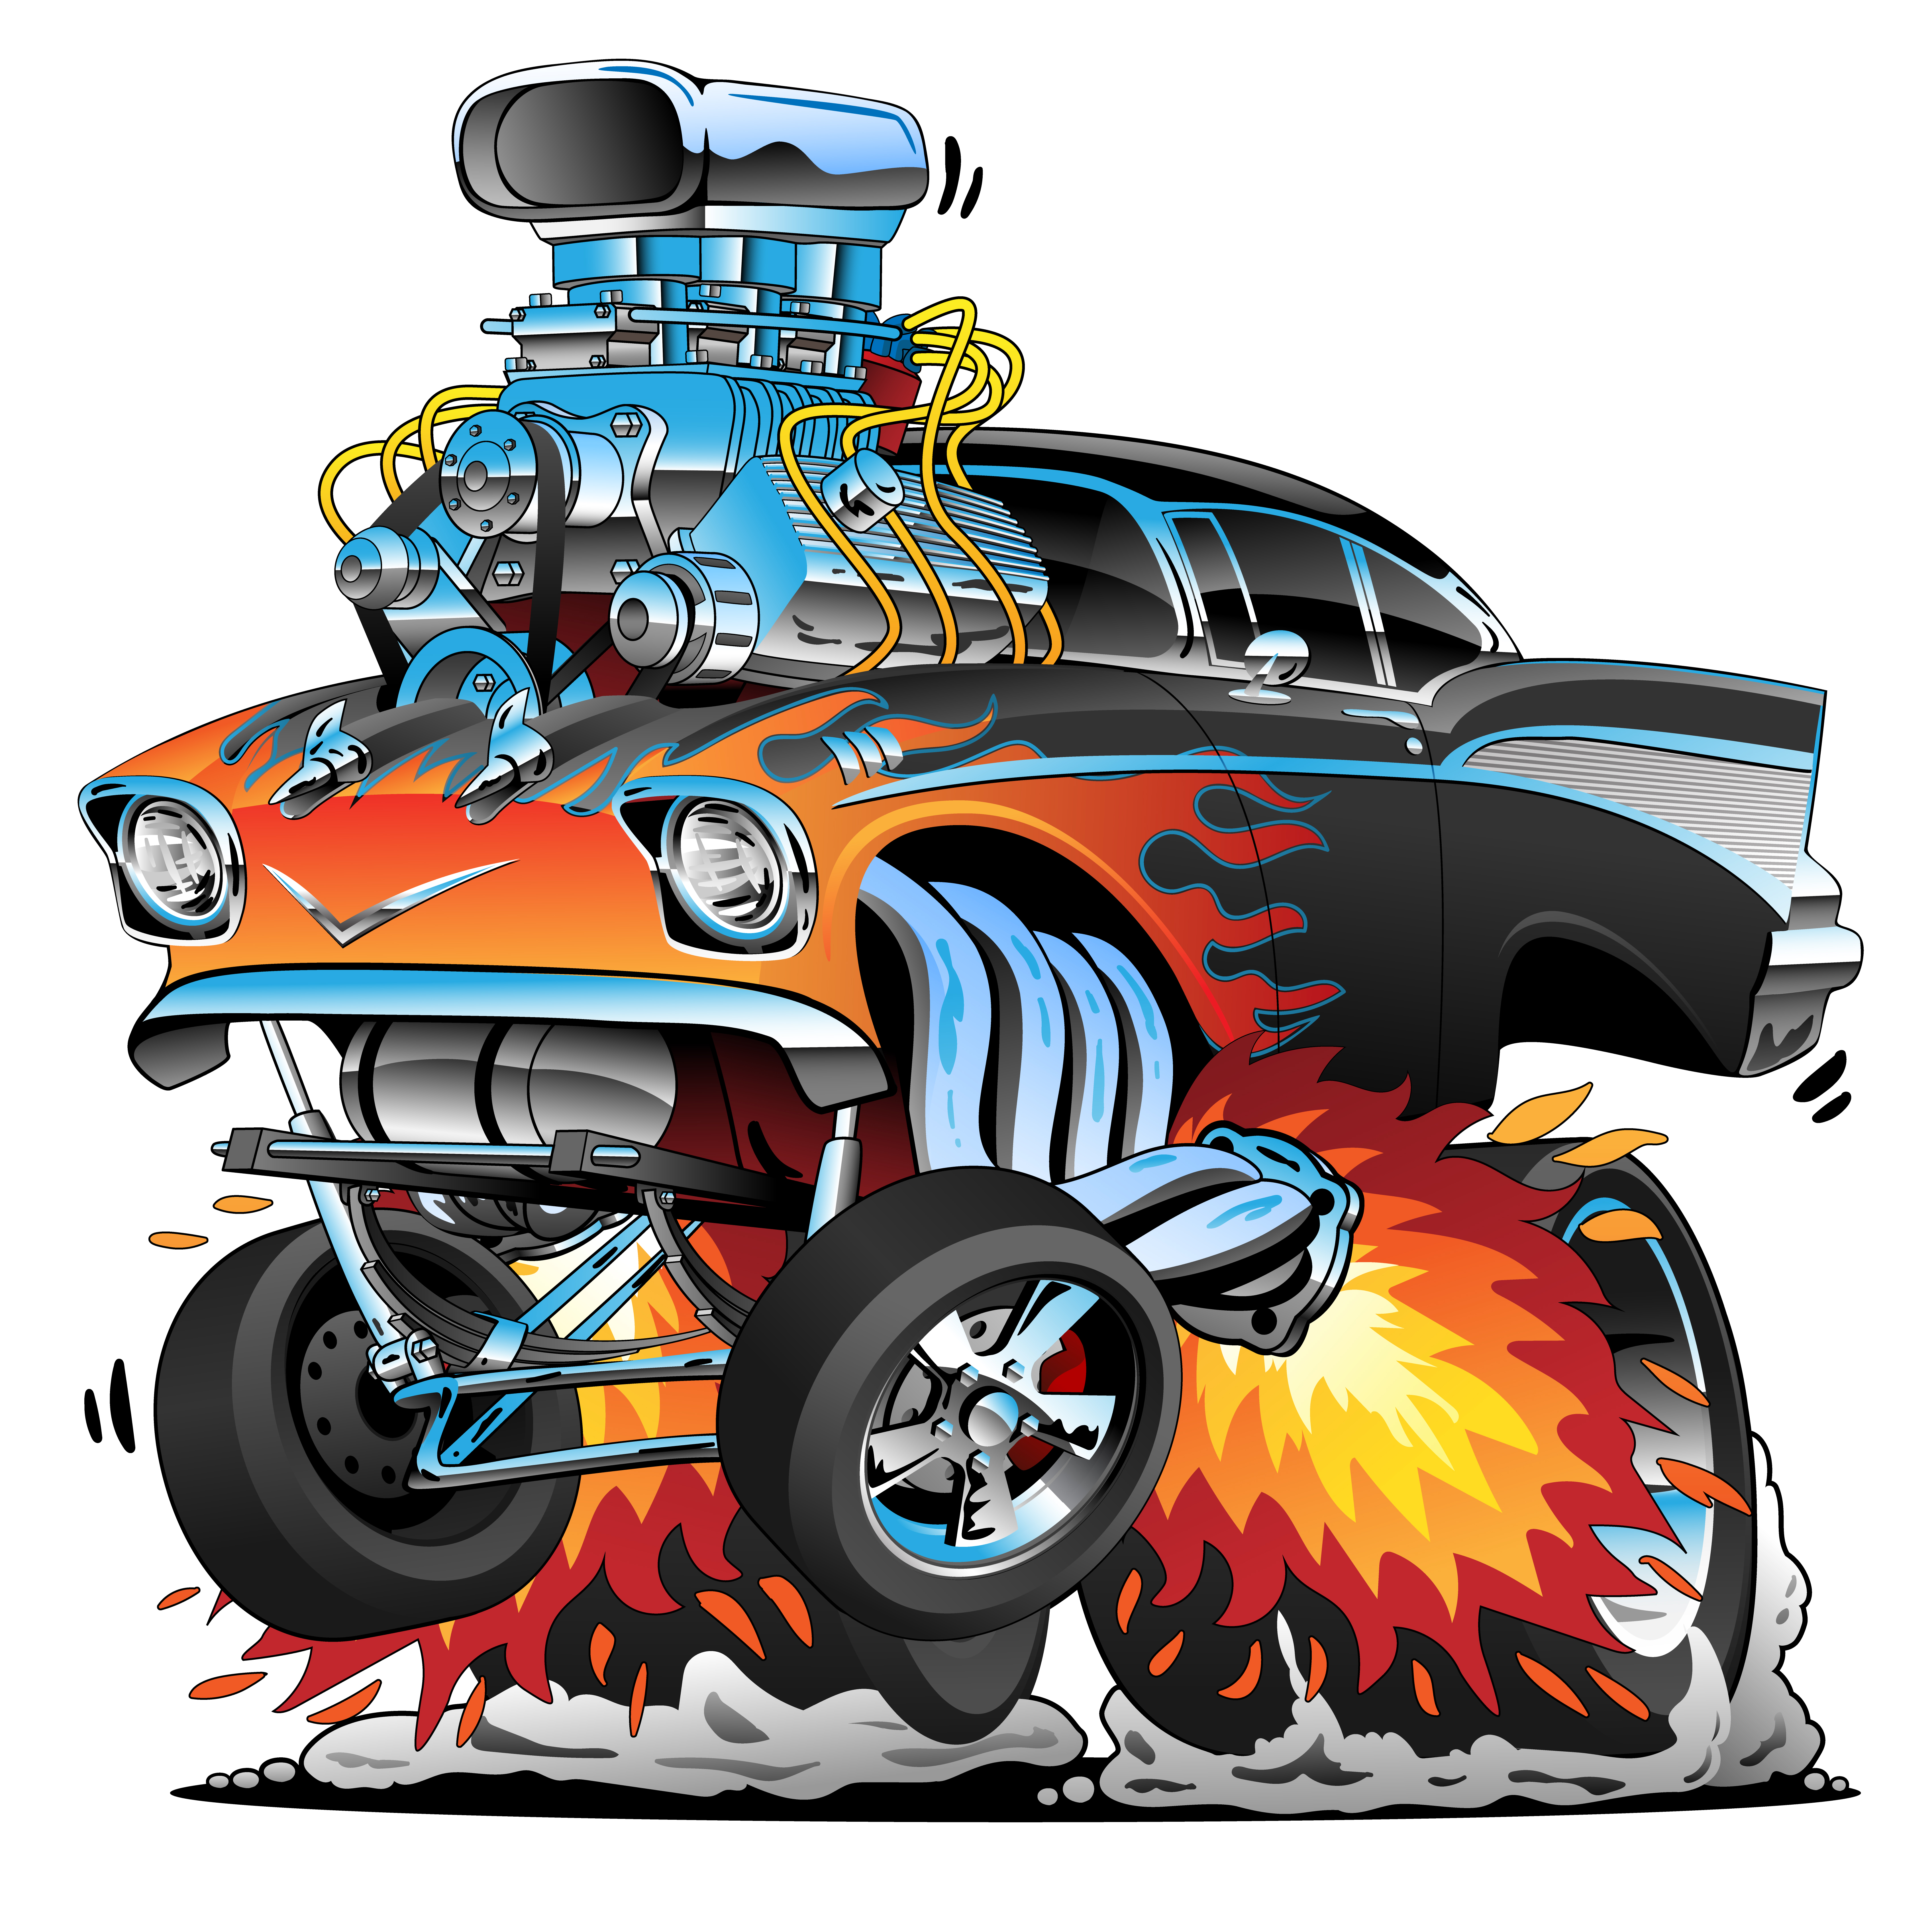 Classic Hot Rod Fifties Style Gasser Drag Racing Muscle